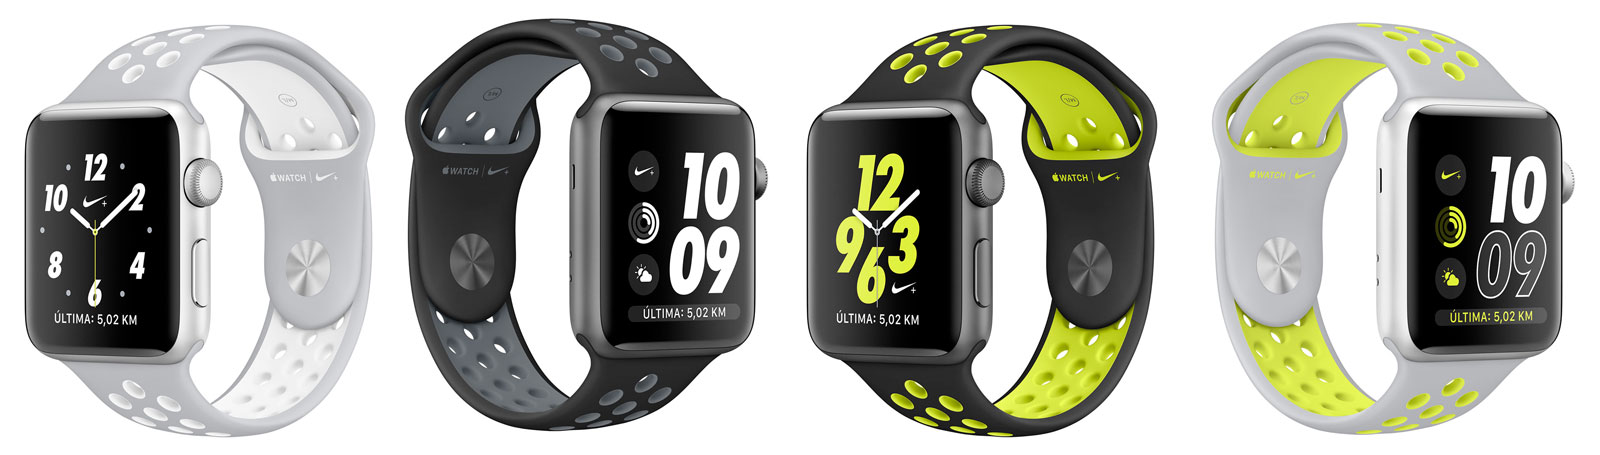 Colores del Apple Watch 2 Nike+